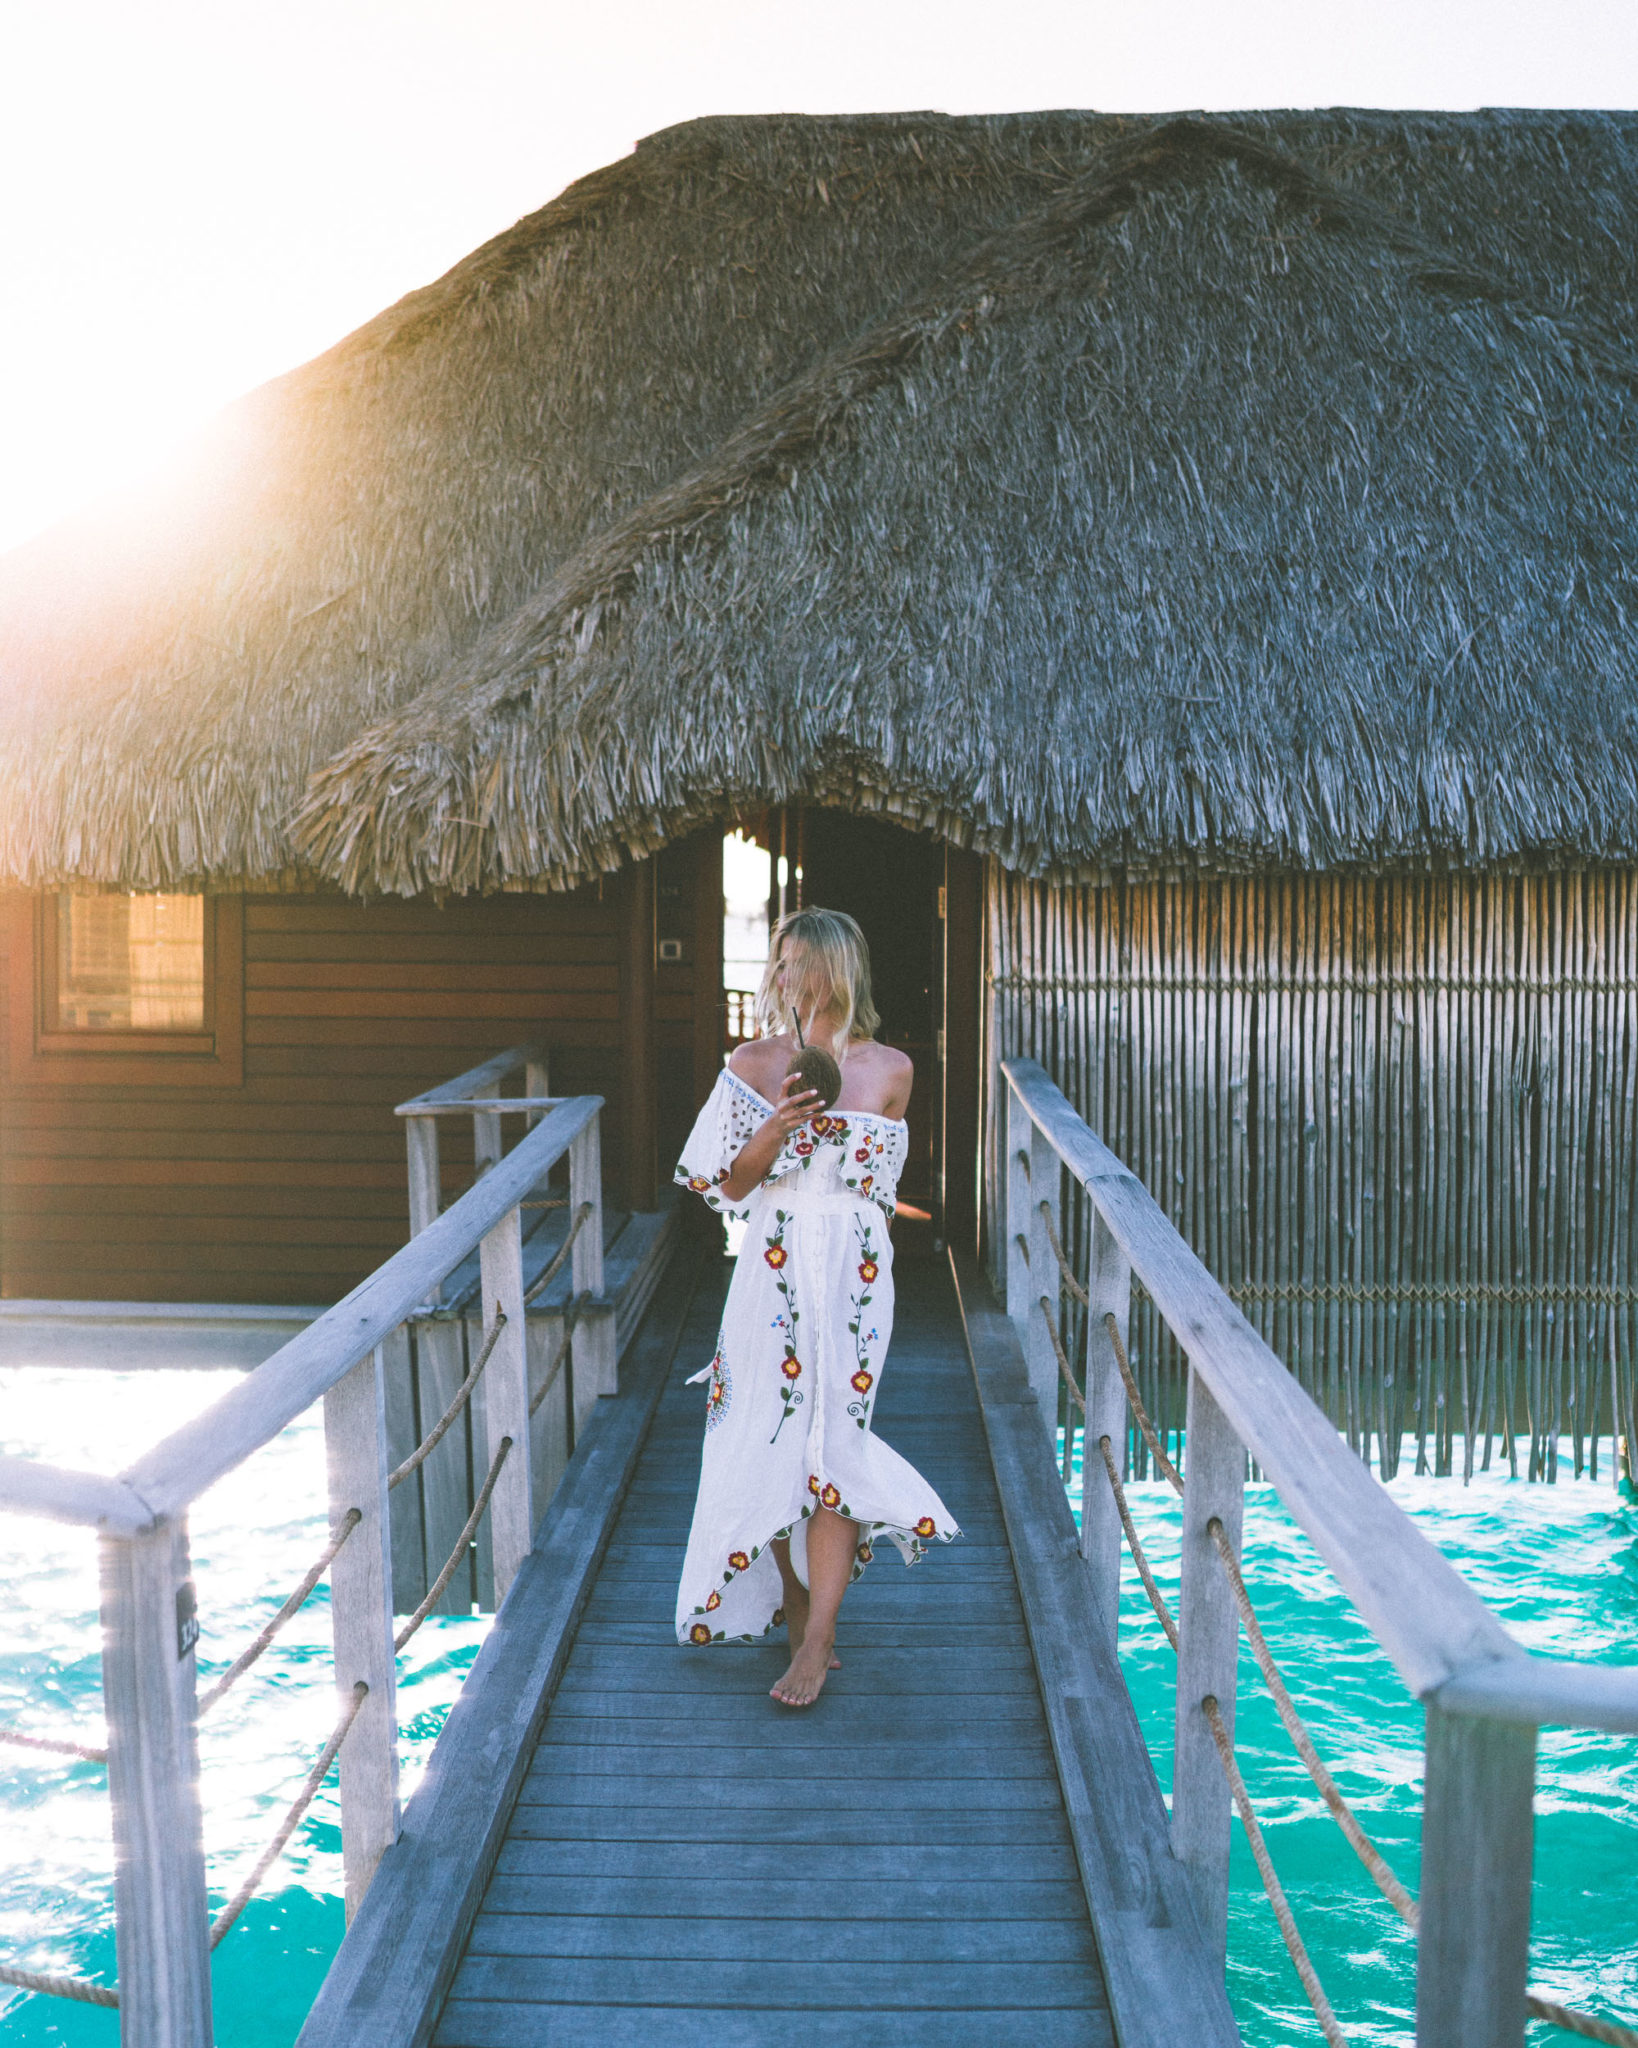 Our overwater bungalow at the four seasons bora bora resort in Tahiti